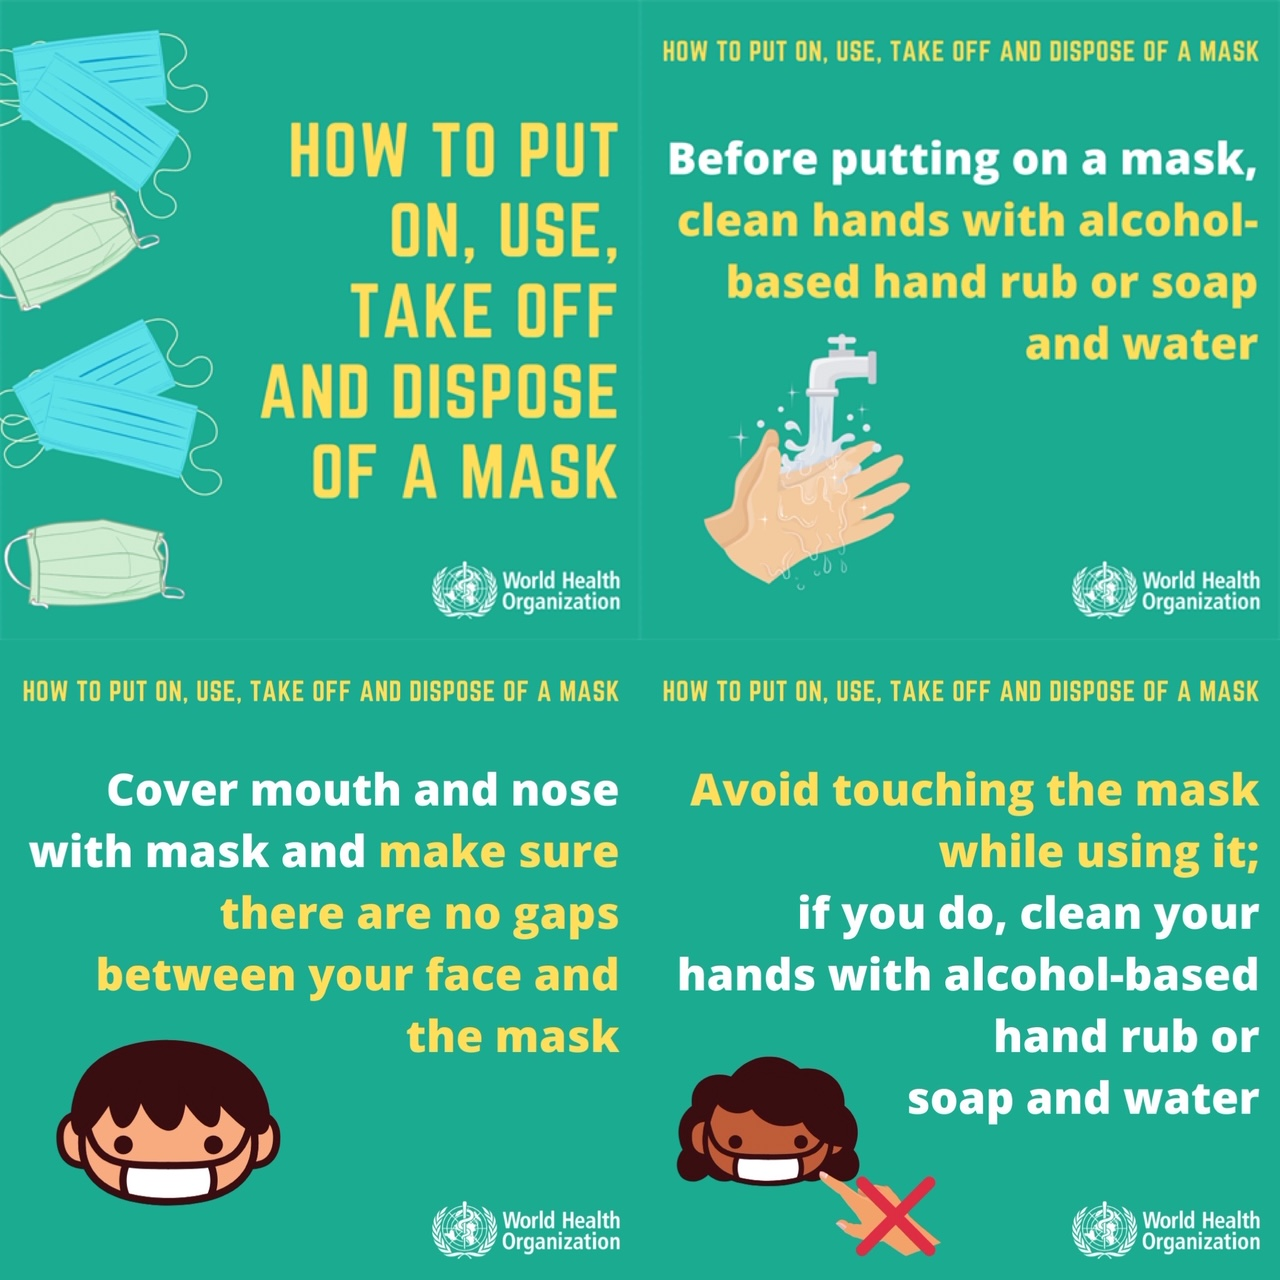 Never worn a face mask before? How to put on a face mask, use, take off and dispose